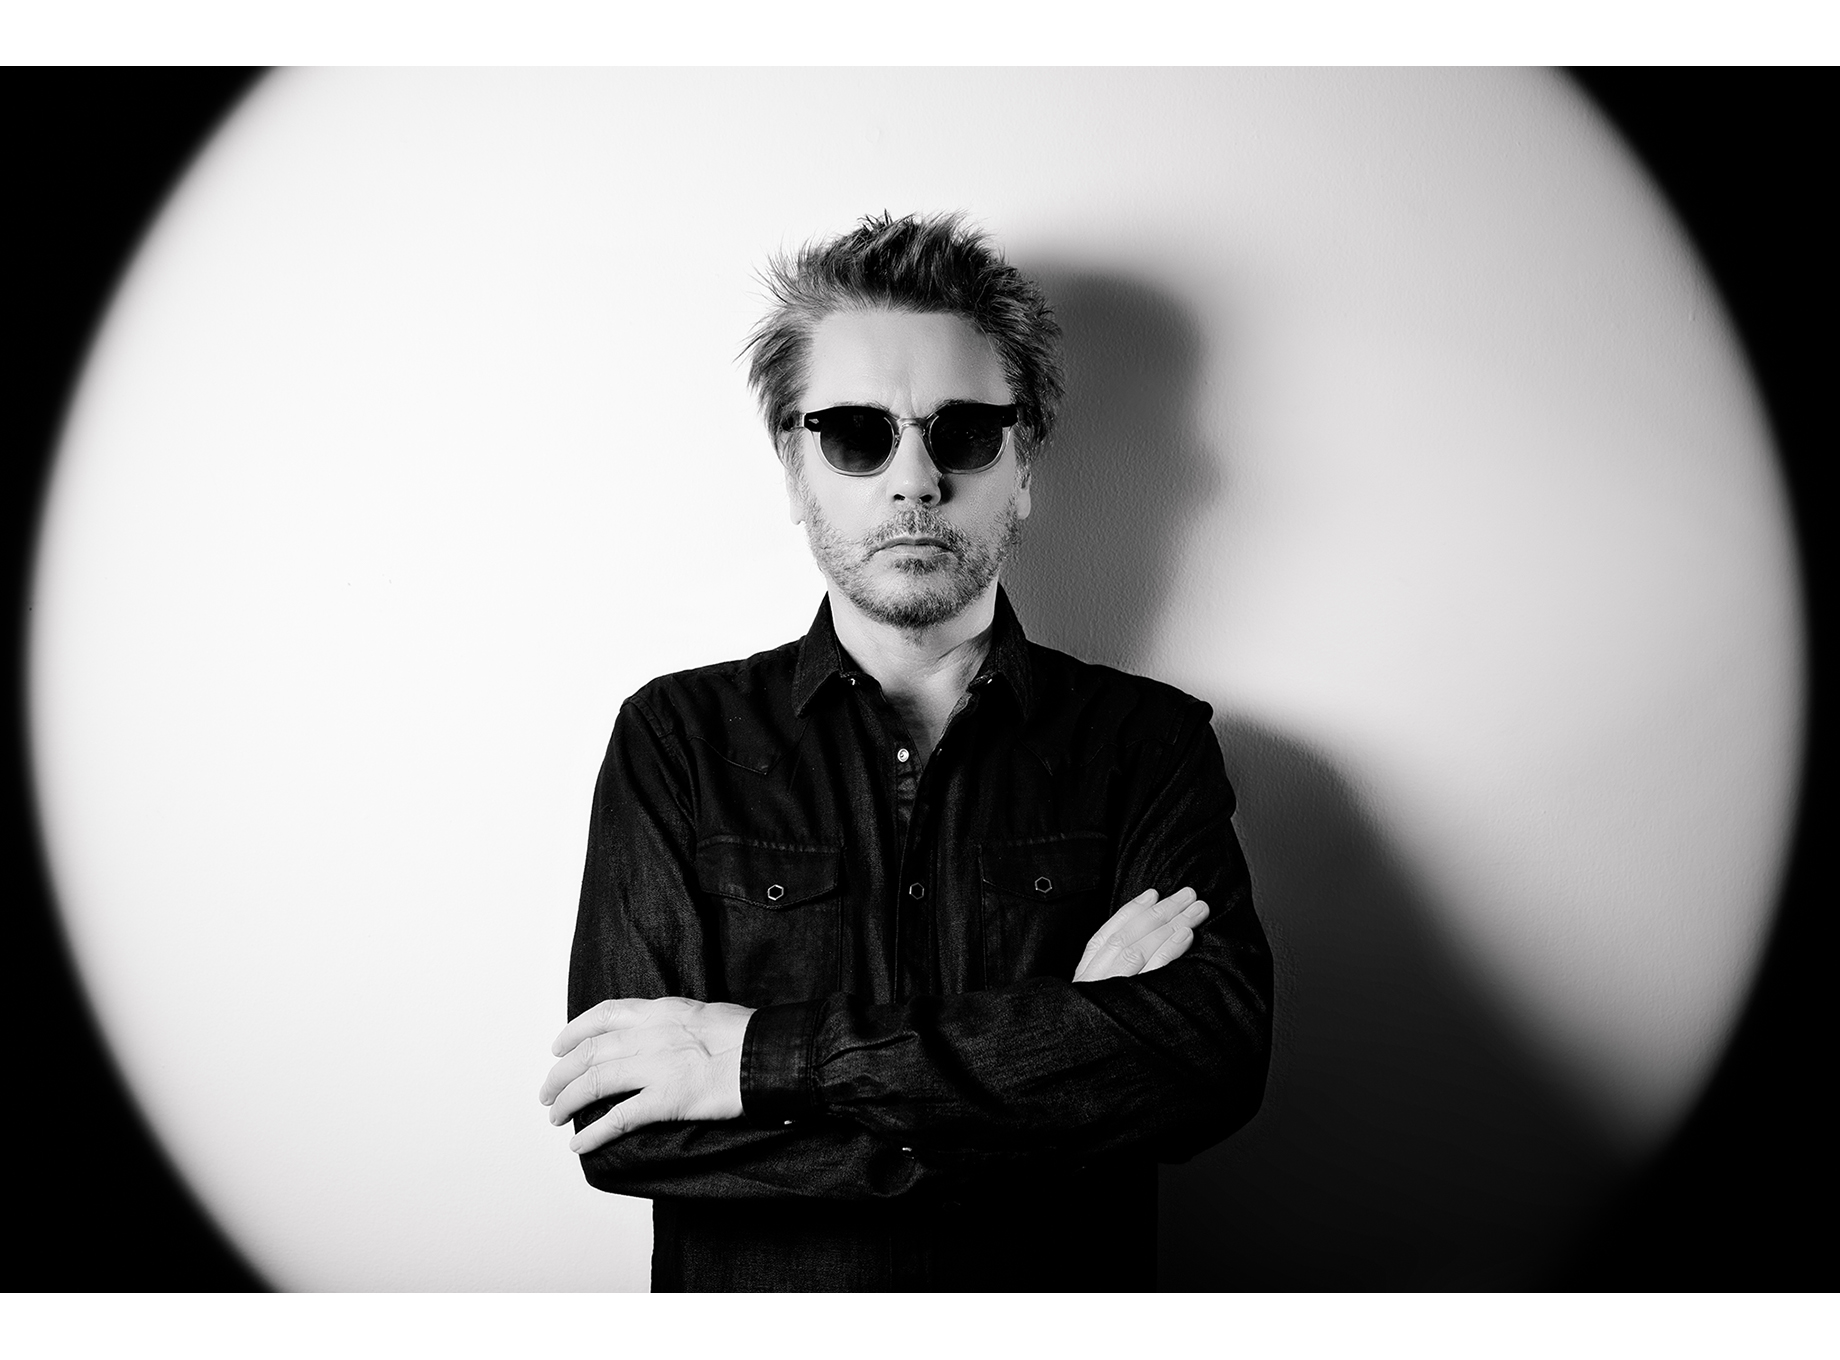 Jean Michel Jarre for Itunes